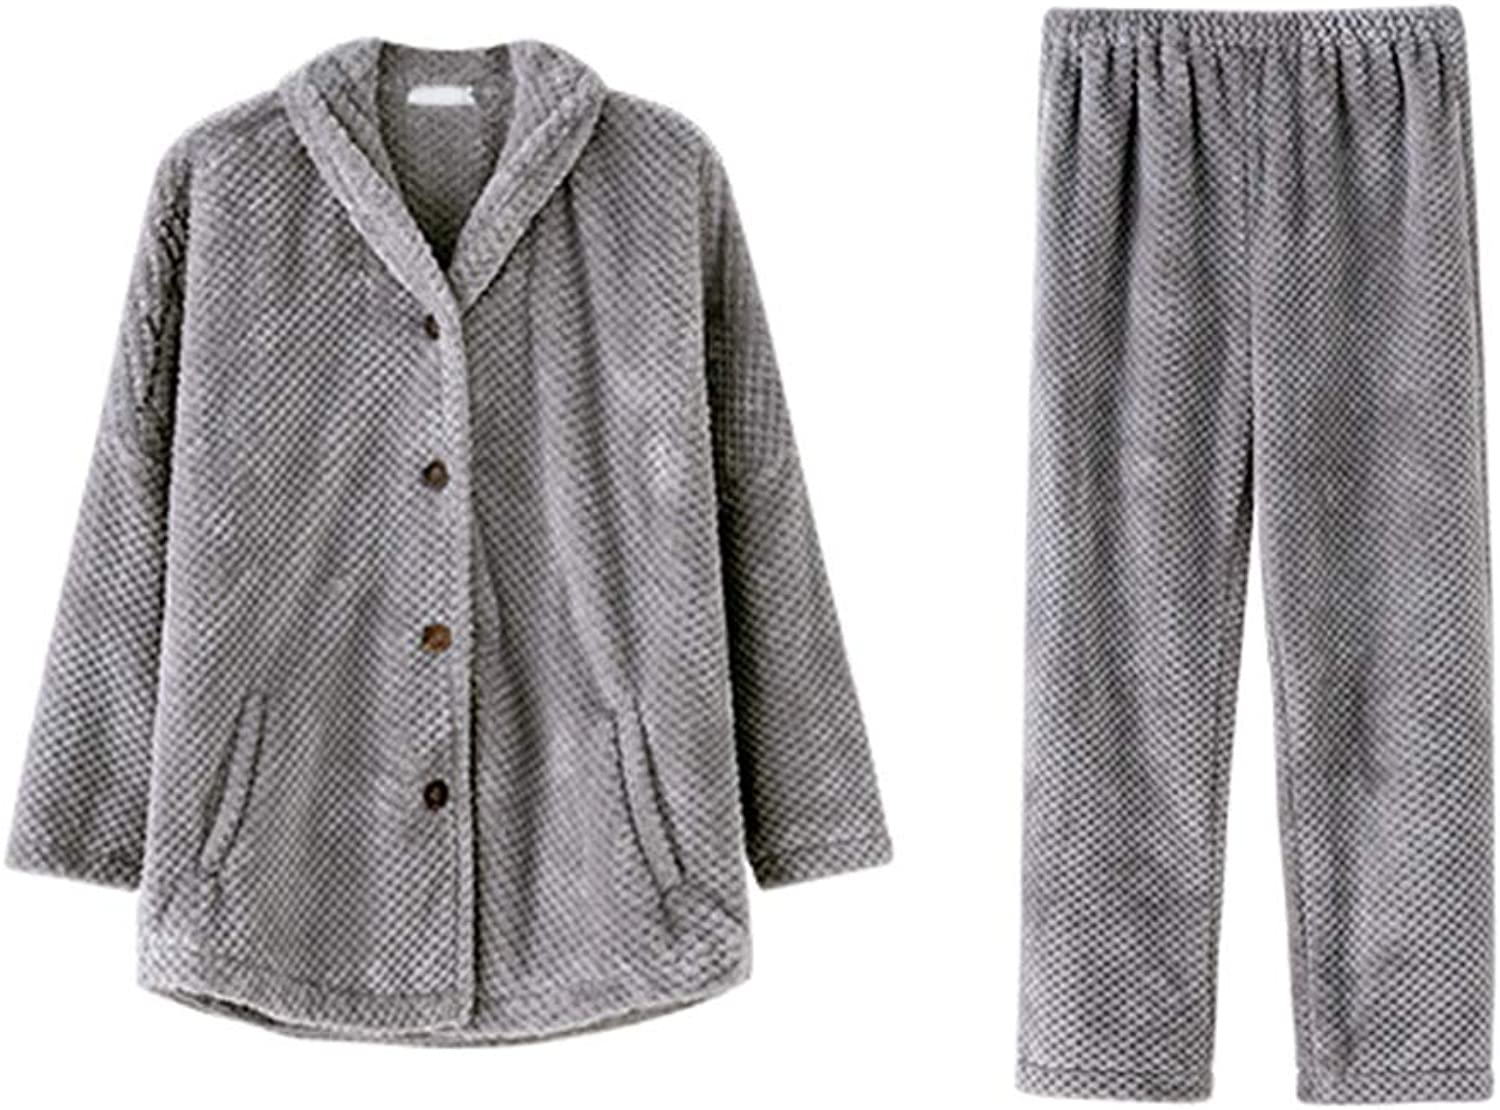 Pajama Sets Pajamas Ladies Autumn and Winter LongSleeved Warm Thick Set Suit Lattice Home Clothes (Size   M)